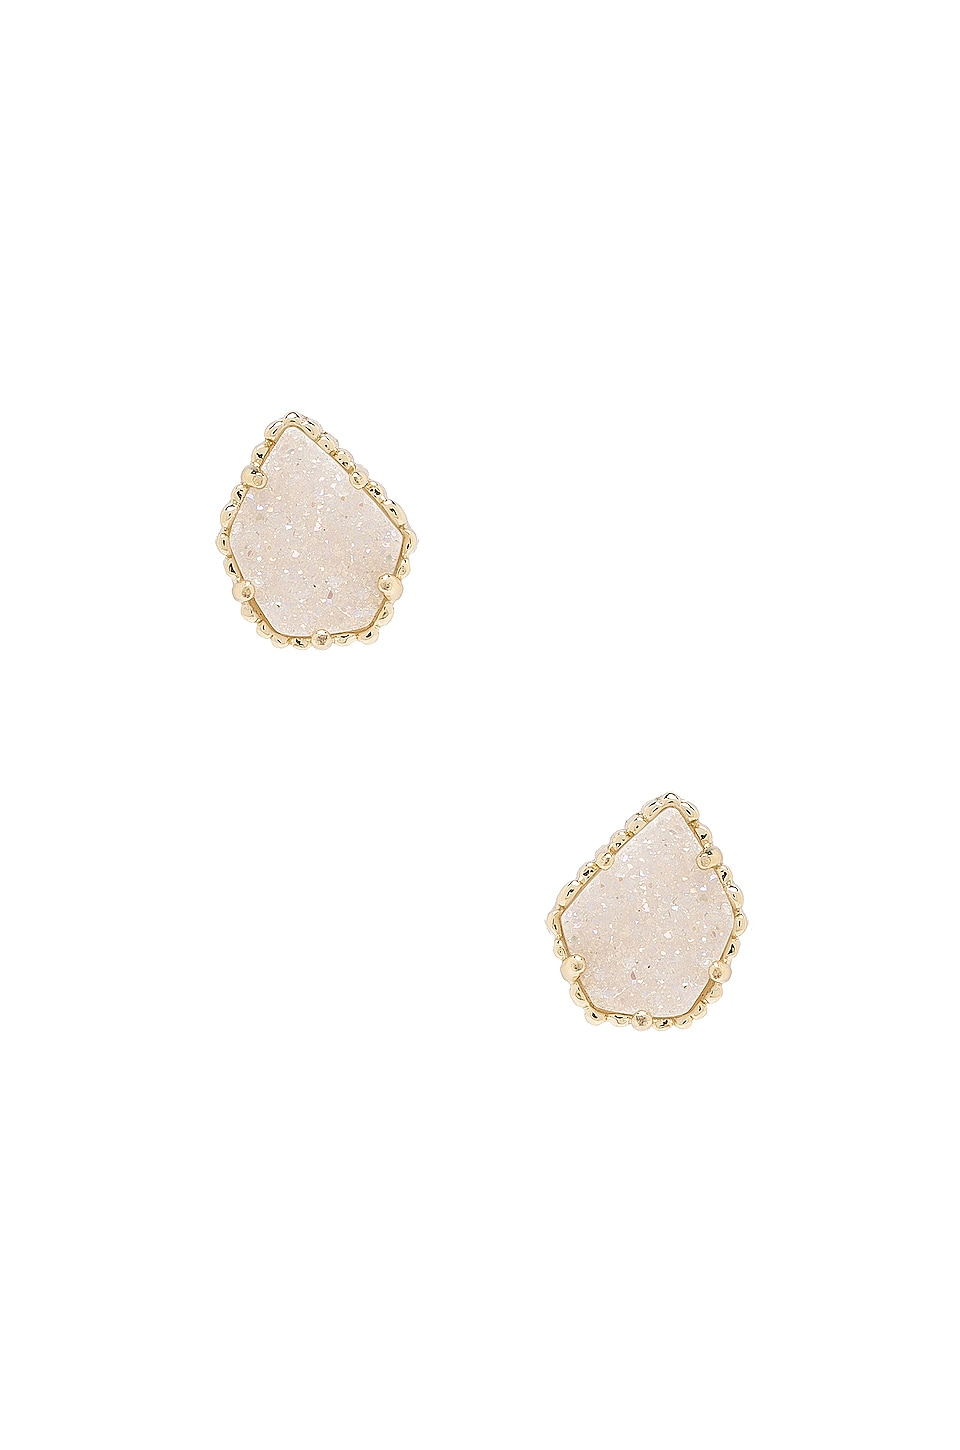 Kendra Scott Tessa Earring in Gold Iridescent & Drusy